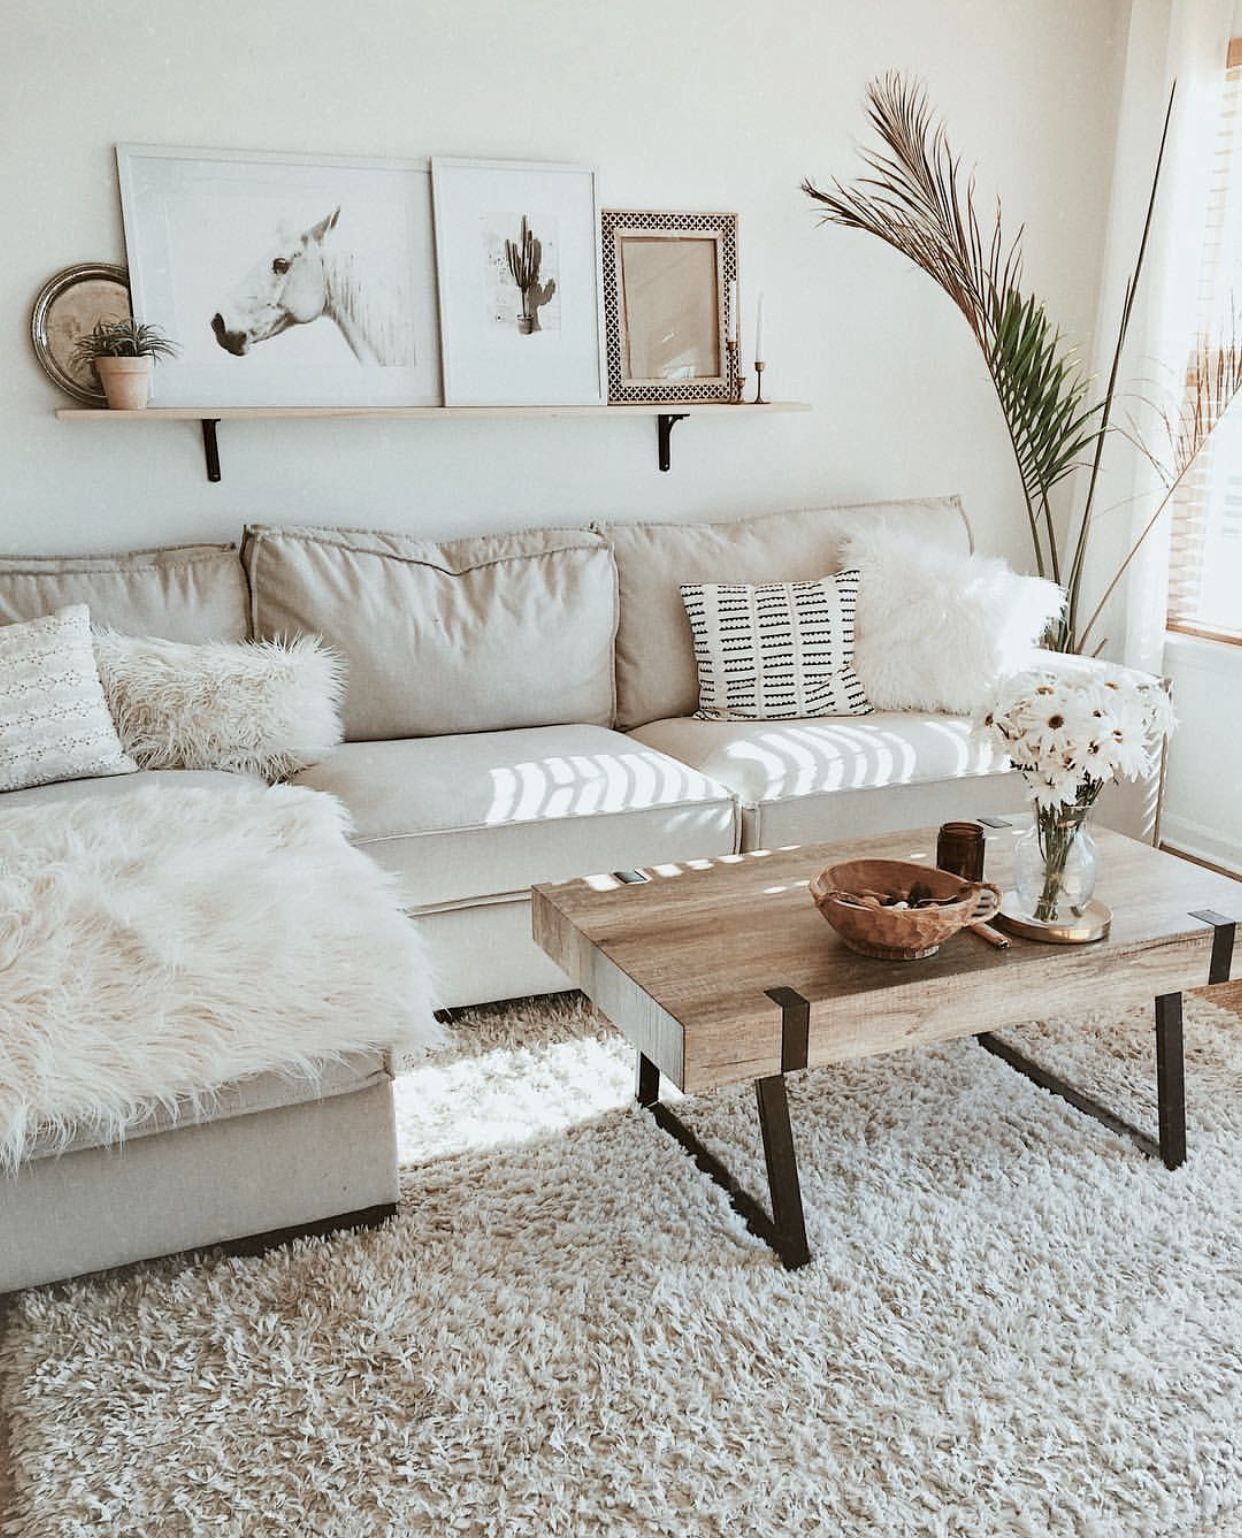 Formale esszimmer dekor pin by melissa  on h o m e  pinterest  home home decor and room